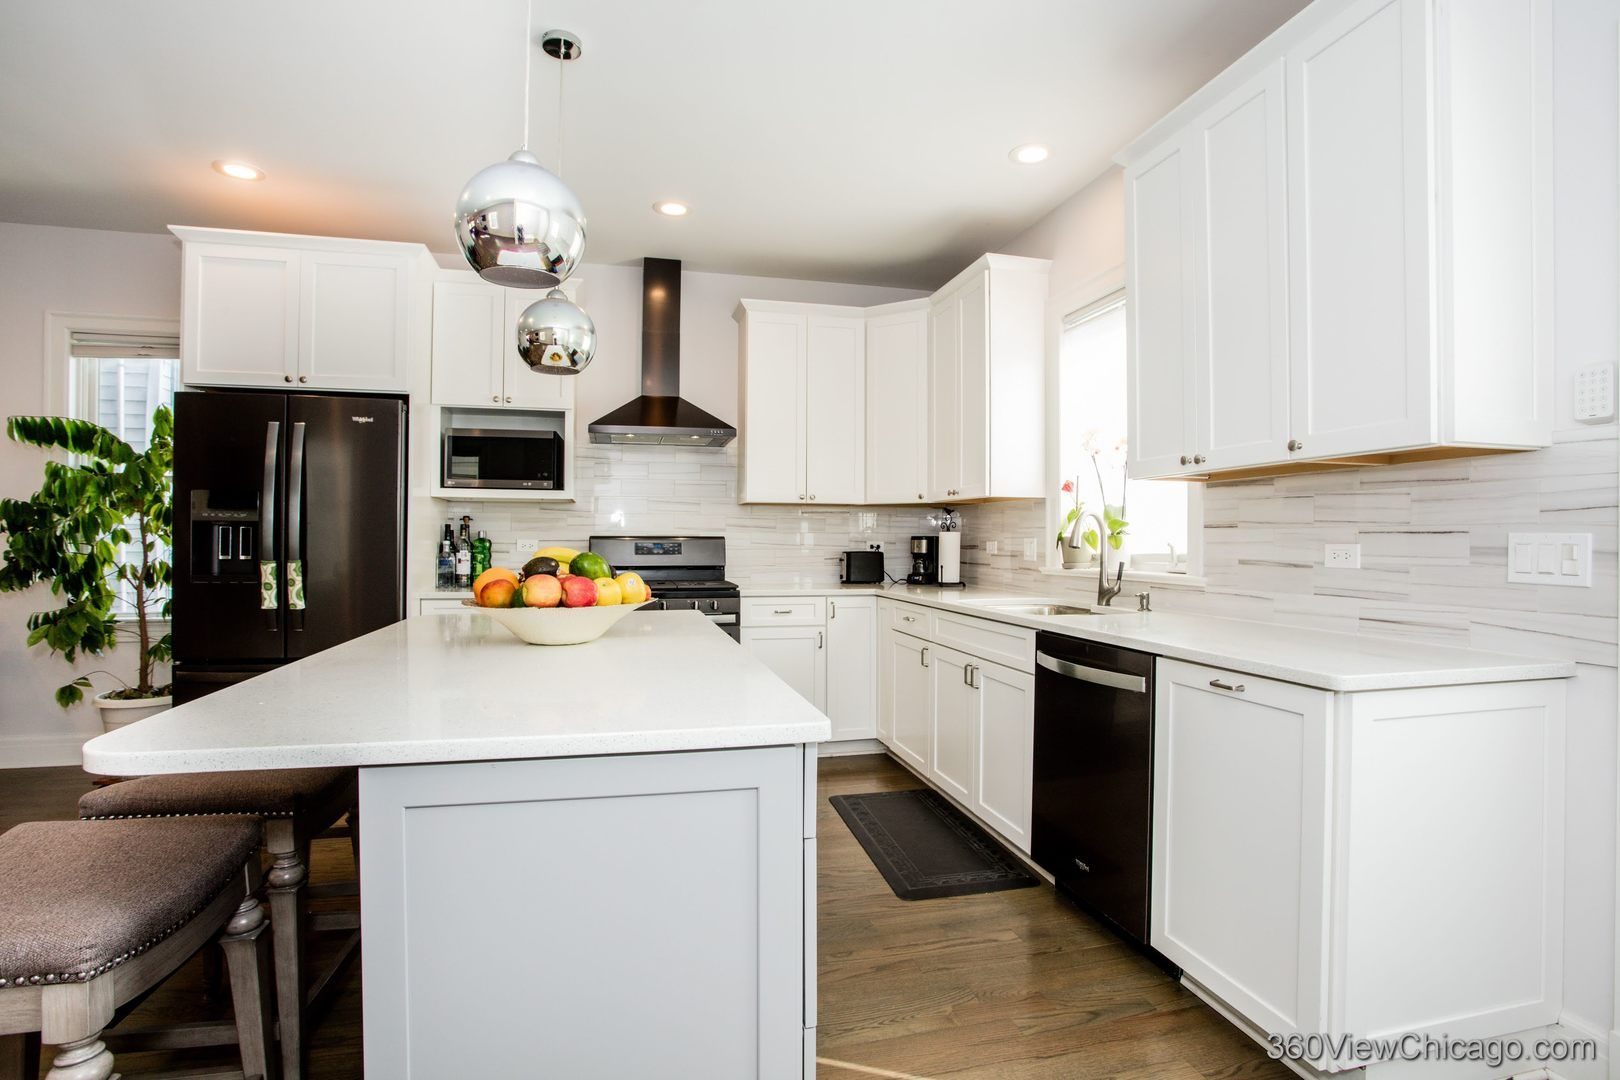 Photo 12: Photos: 1733 Troy Street in Chicago: CHI - Humboldt Park Residential for sale ()  : MLS®# 10911567